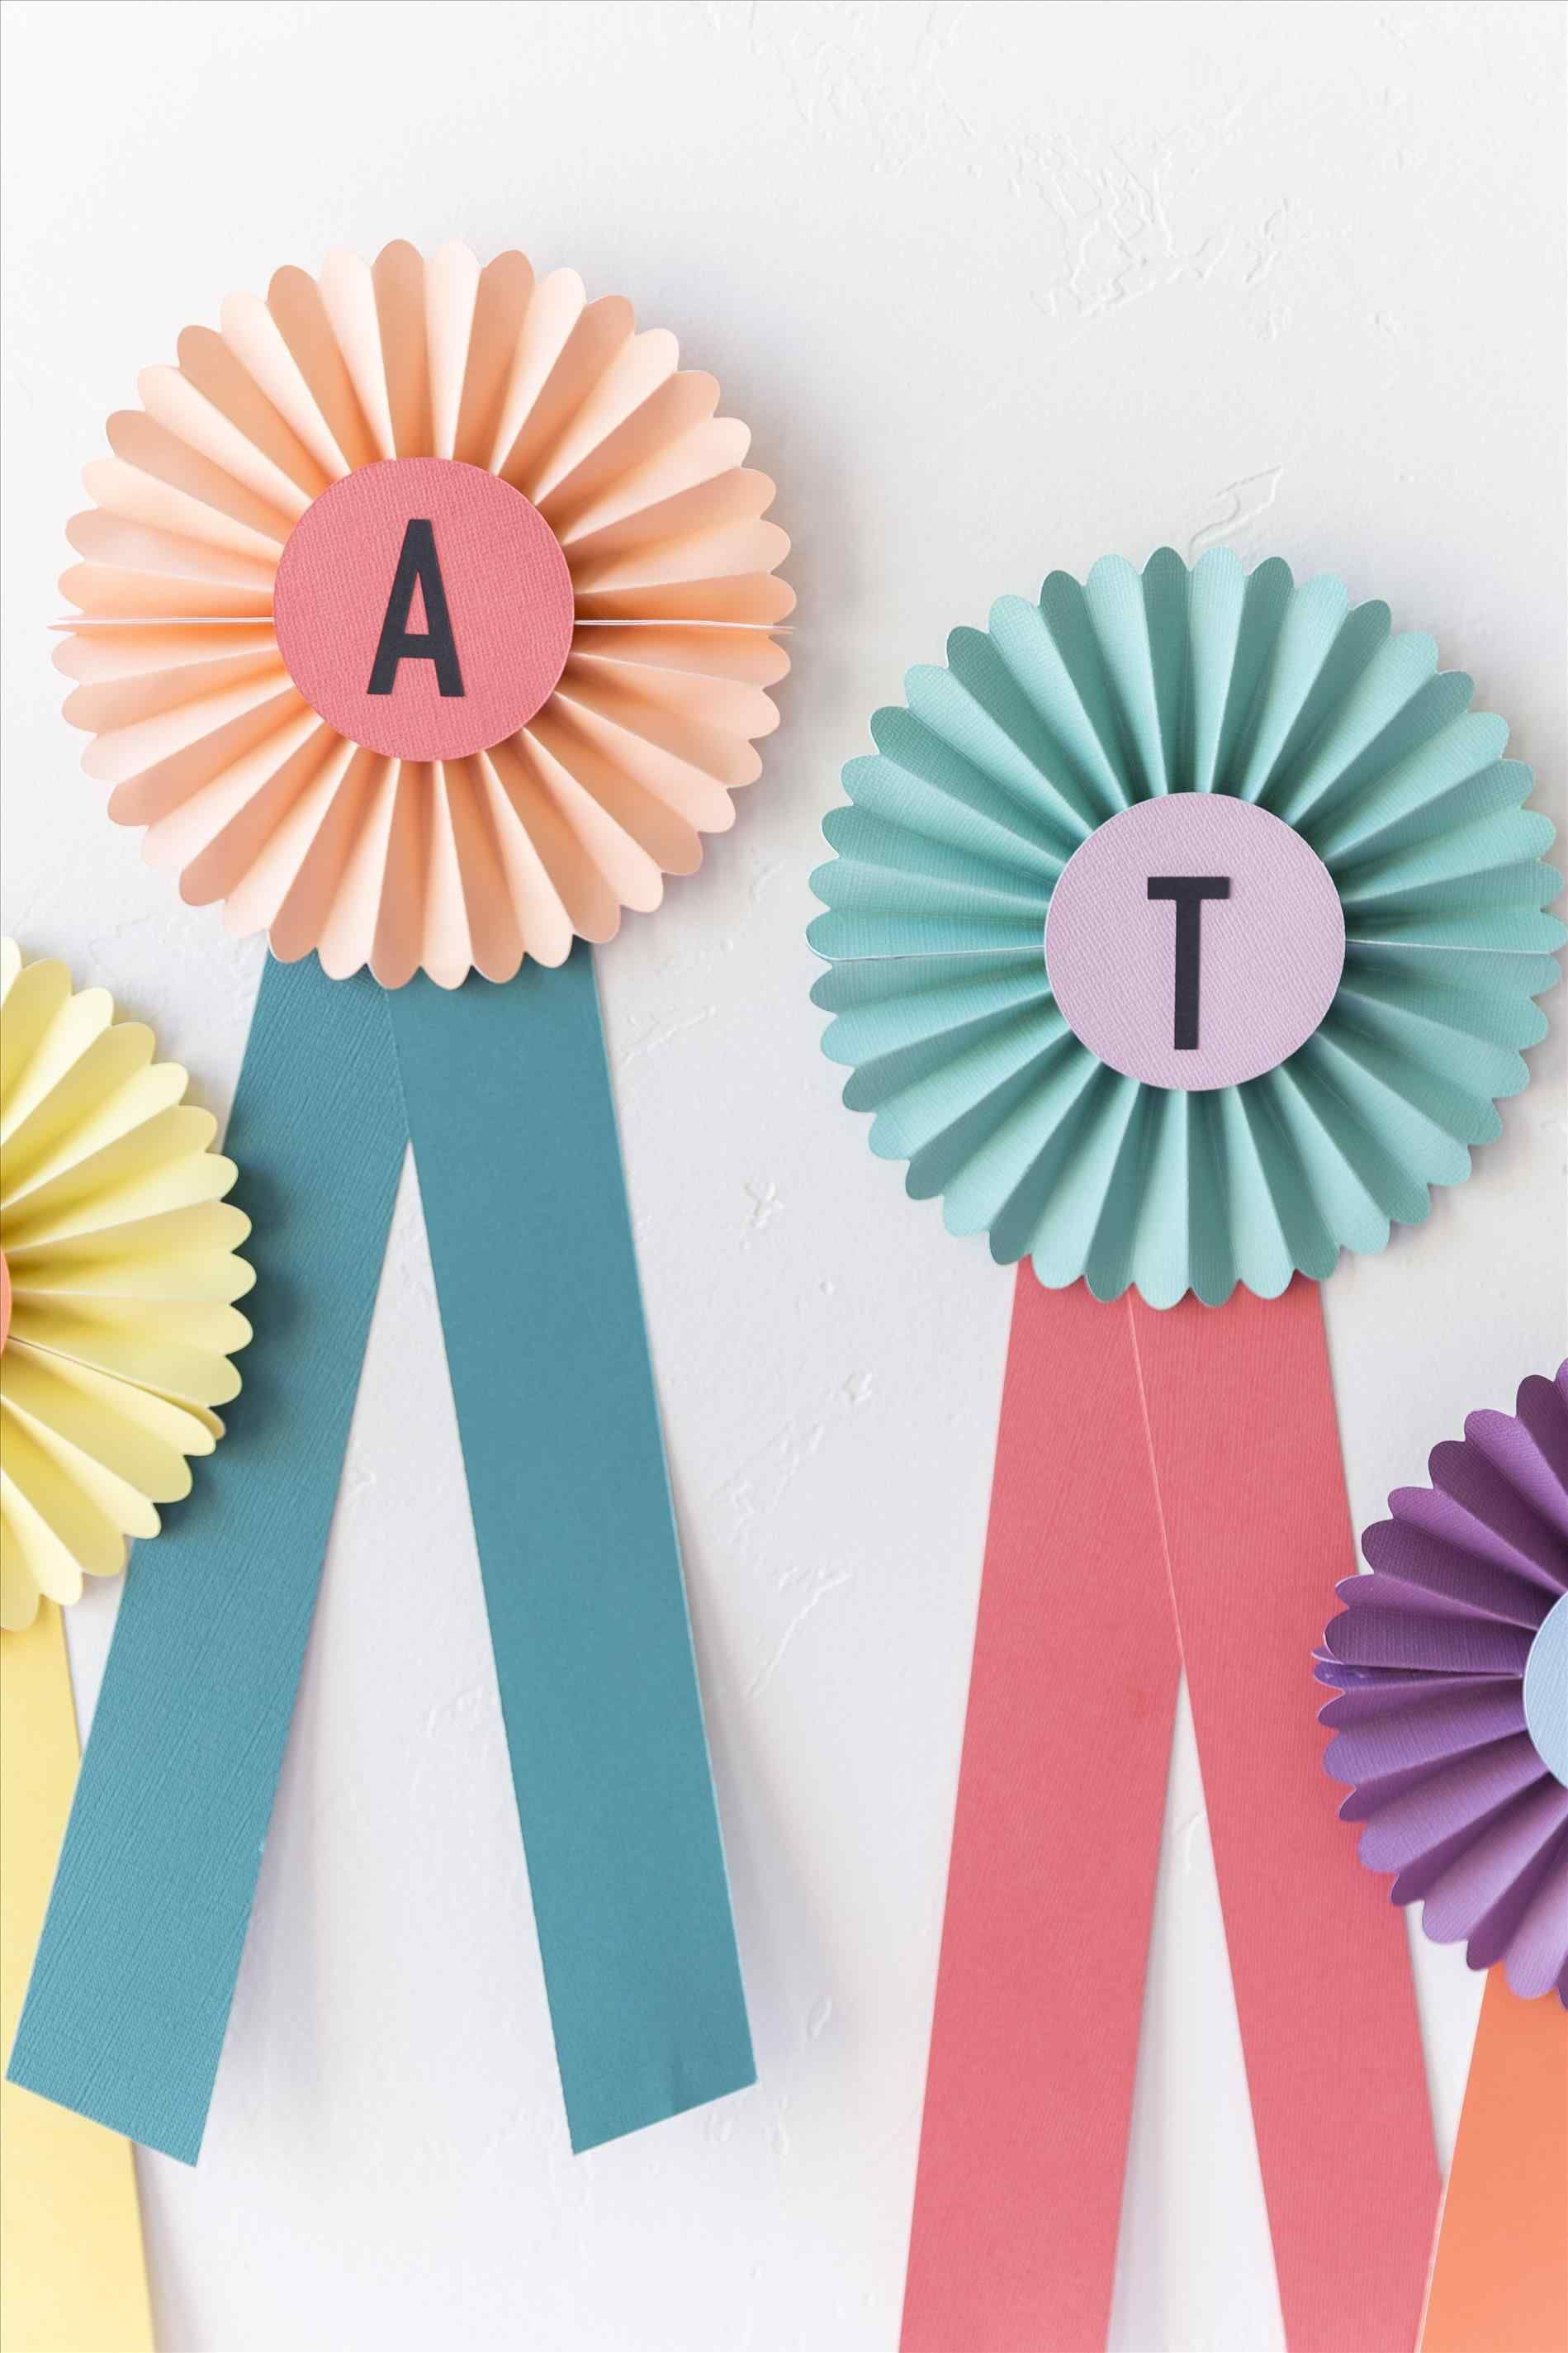 Pin By Fults Michele On Decors212 Pinterest Paper Ribbon